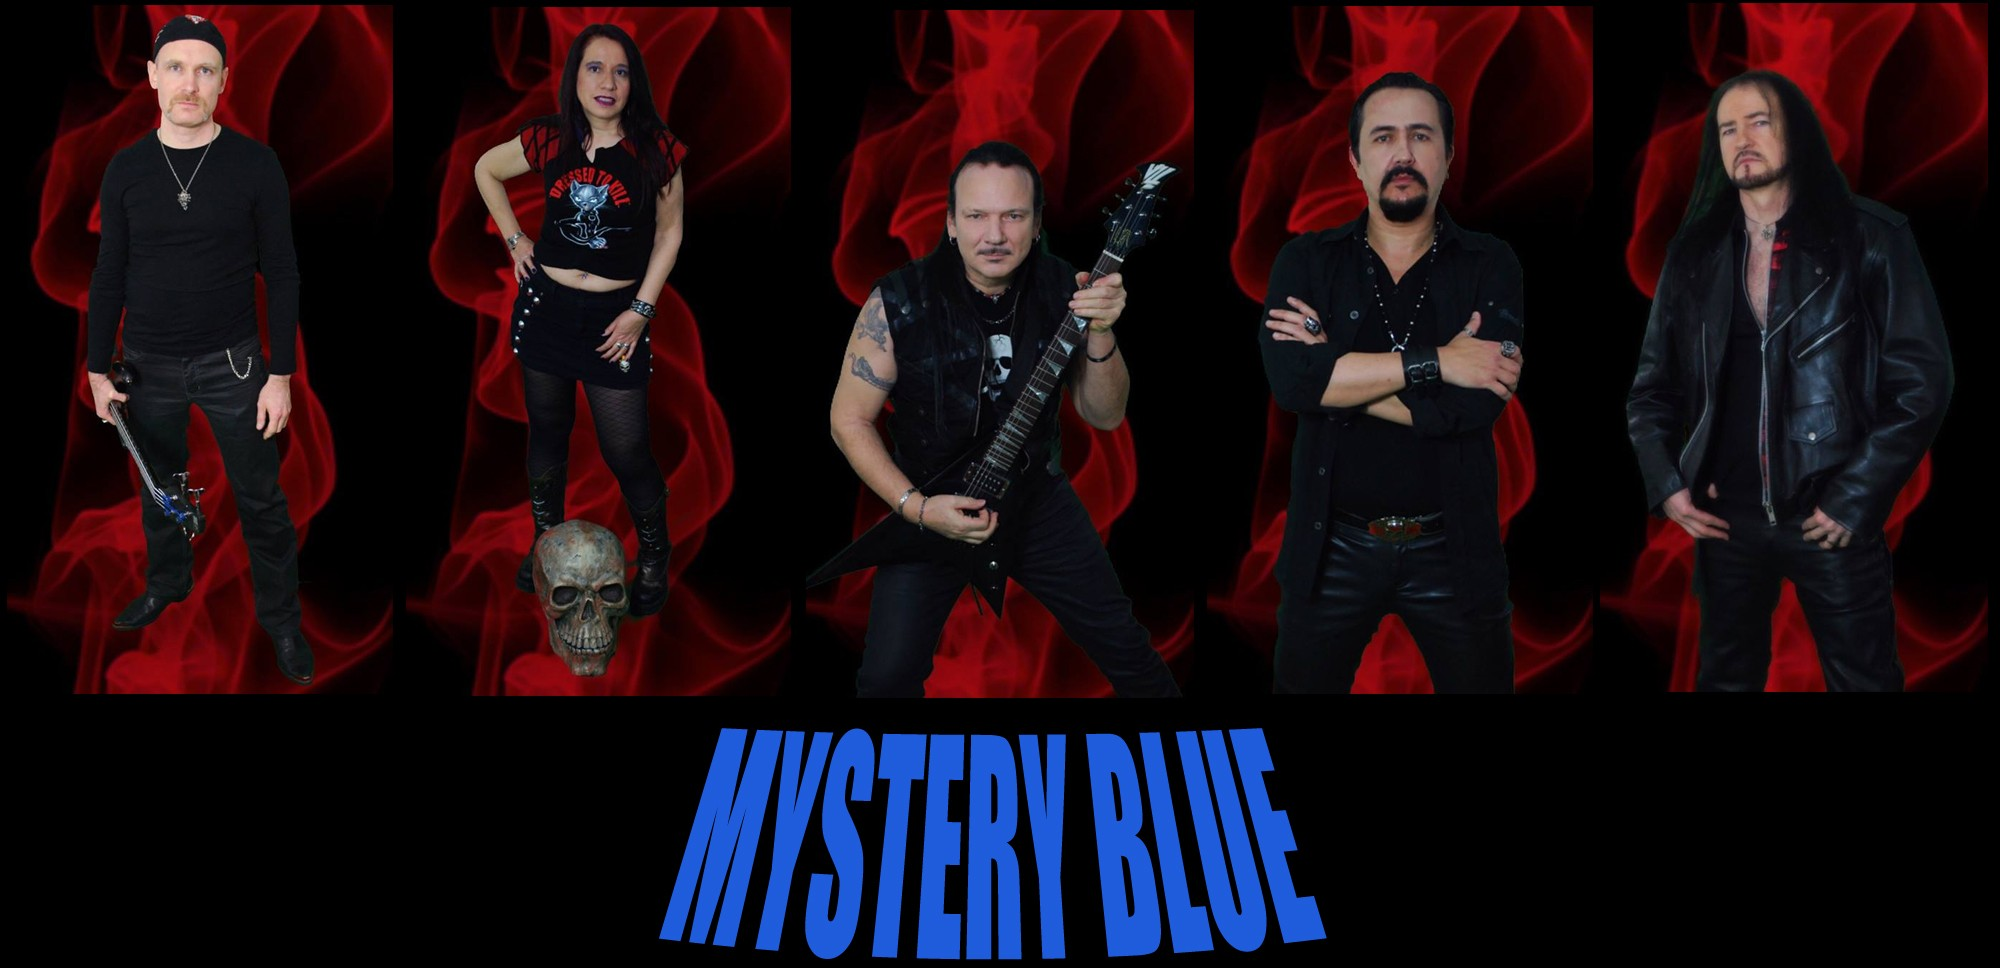 MYSTERY BLUE Live ... Made in Europe (2016) Myster10